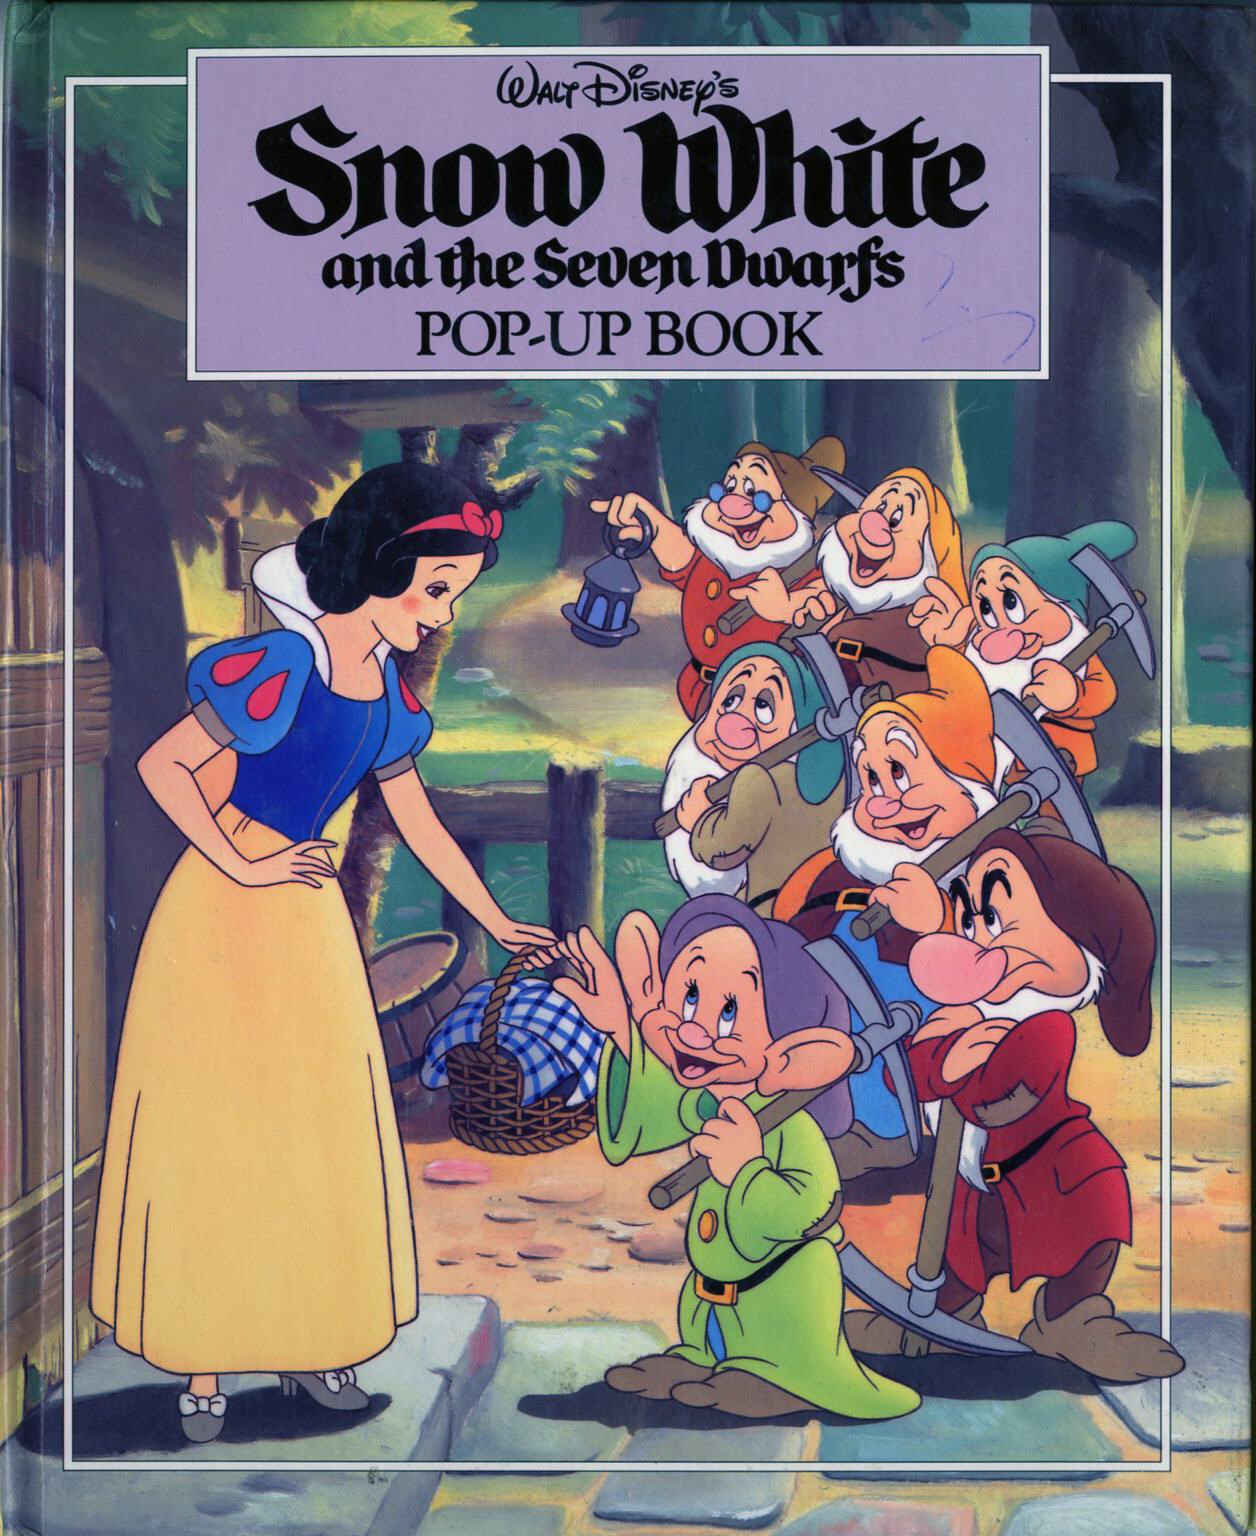 Snow white and the seven dwarfs story  porncraft picture